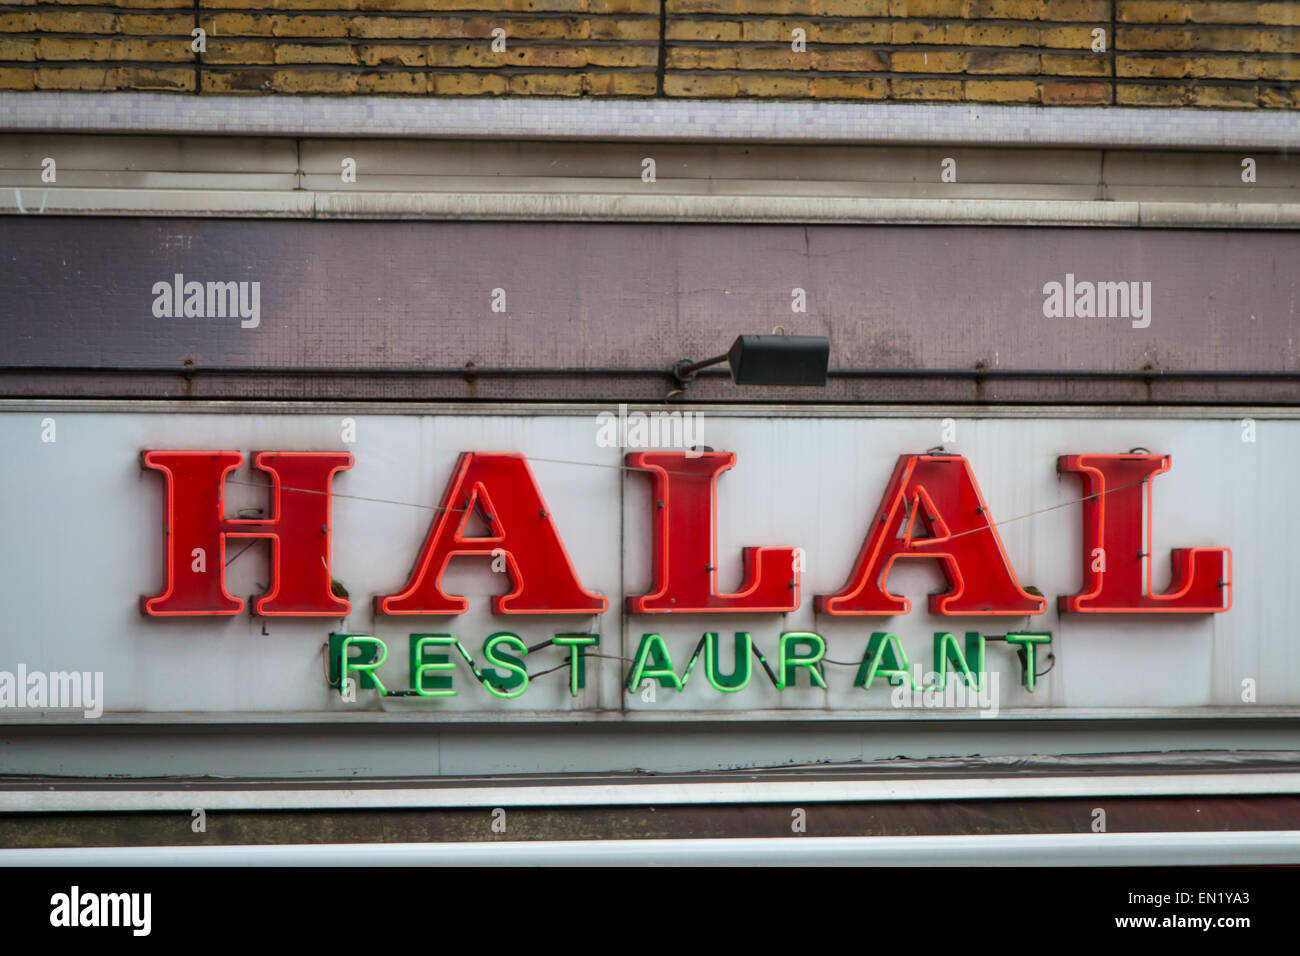 Halal Restaurant Stock Photos Amp Halal Restaurant Stock